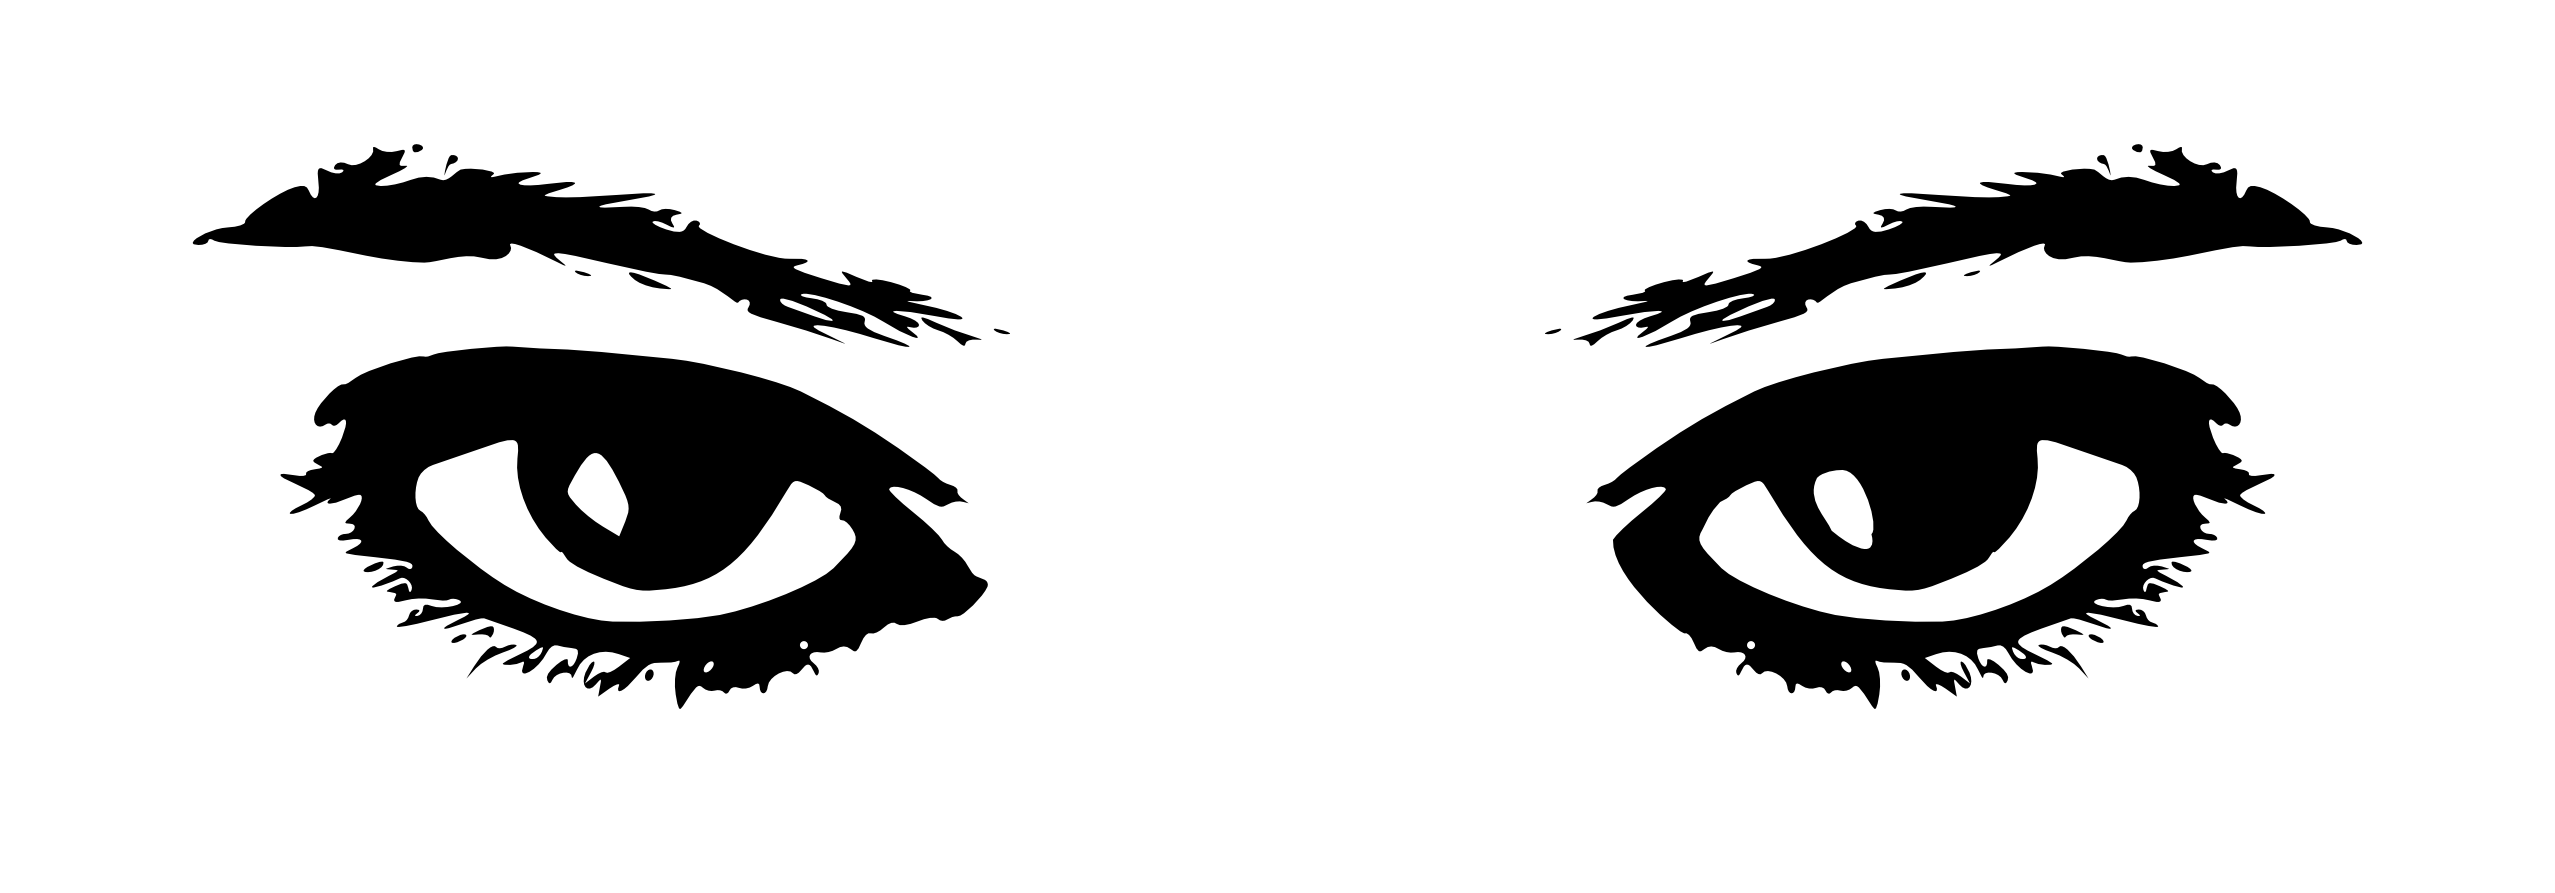 Line Art Eyes : Black and white eyes clip art clipart best